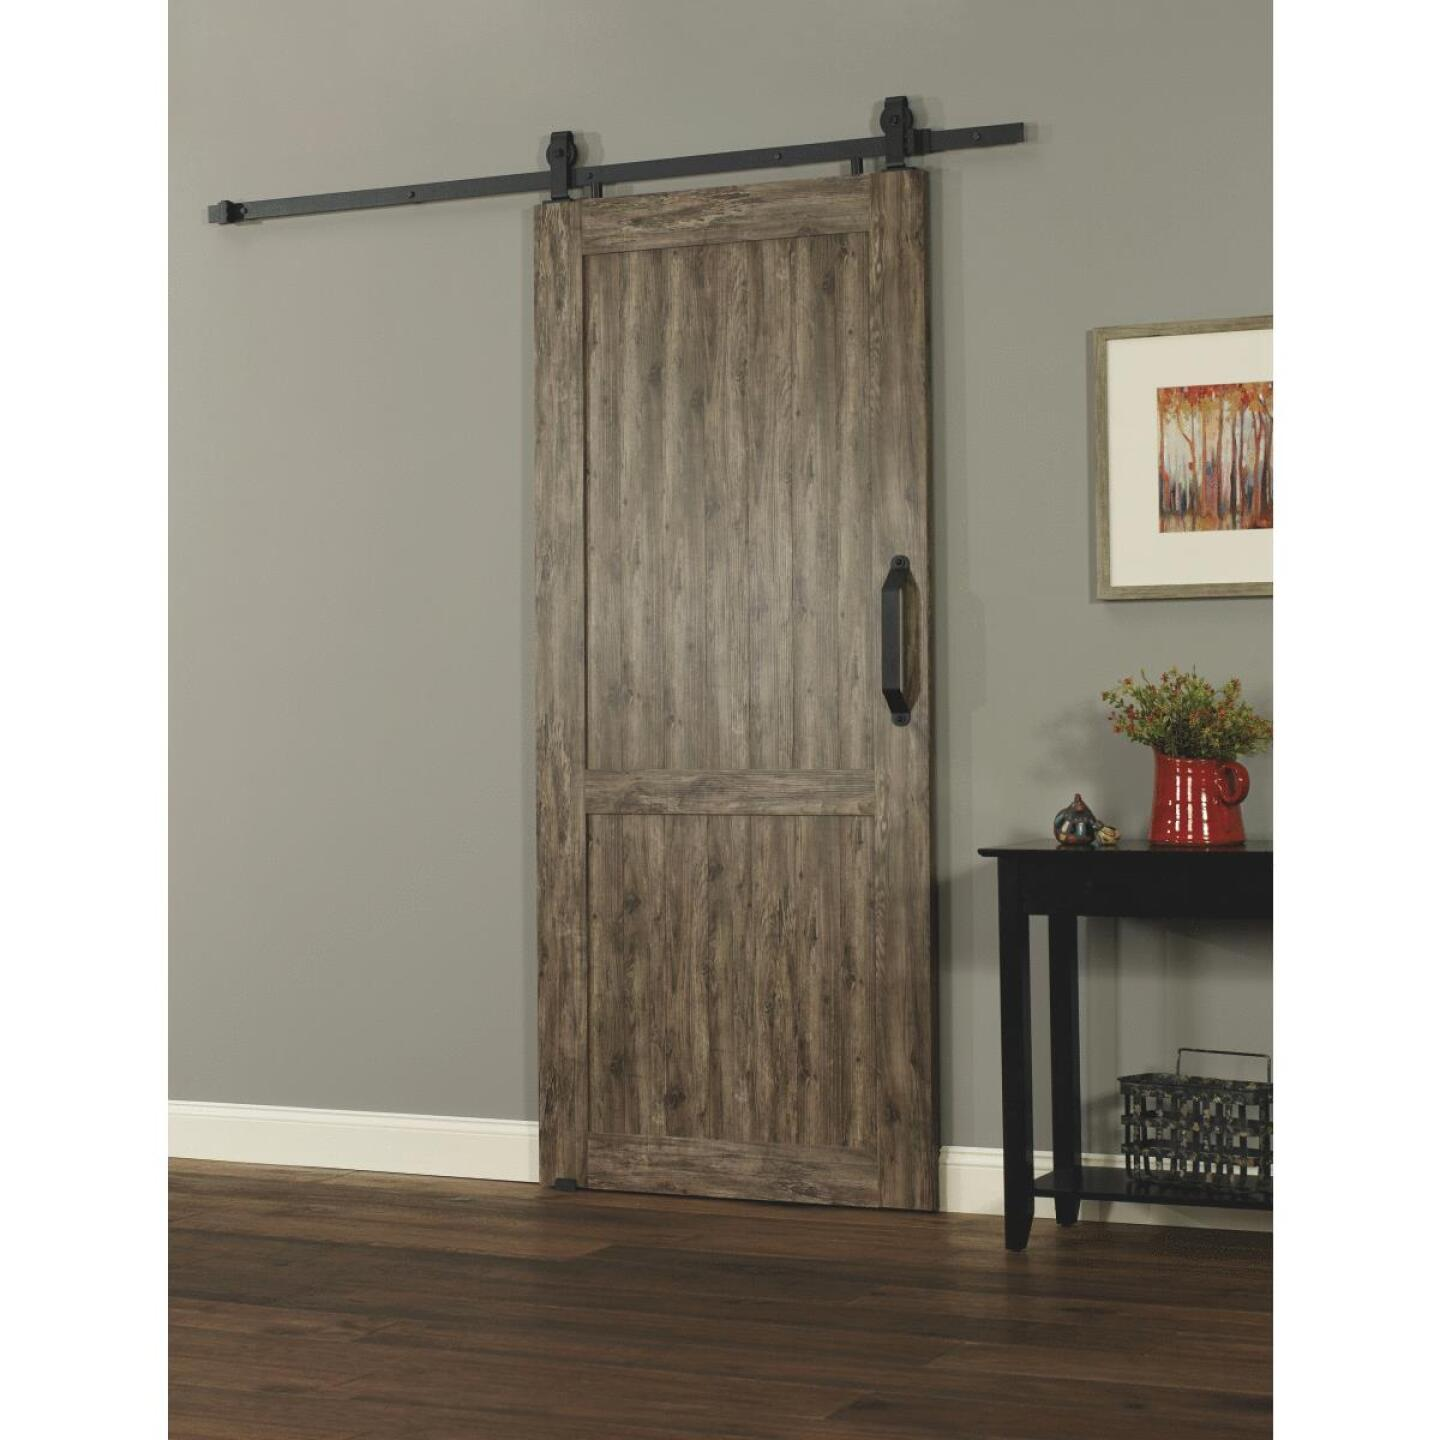 Millbrooke 42 In. x 84 In. x 1.3 In. H-Style Weathered Gray PVC Barn Door Kit Image 2